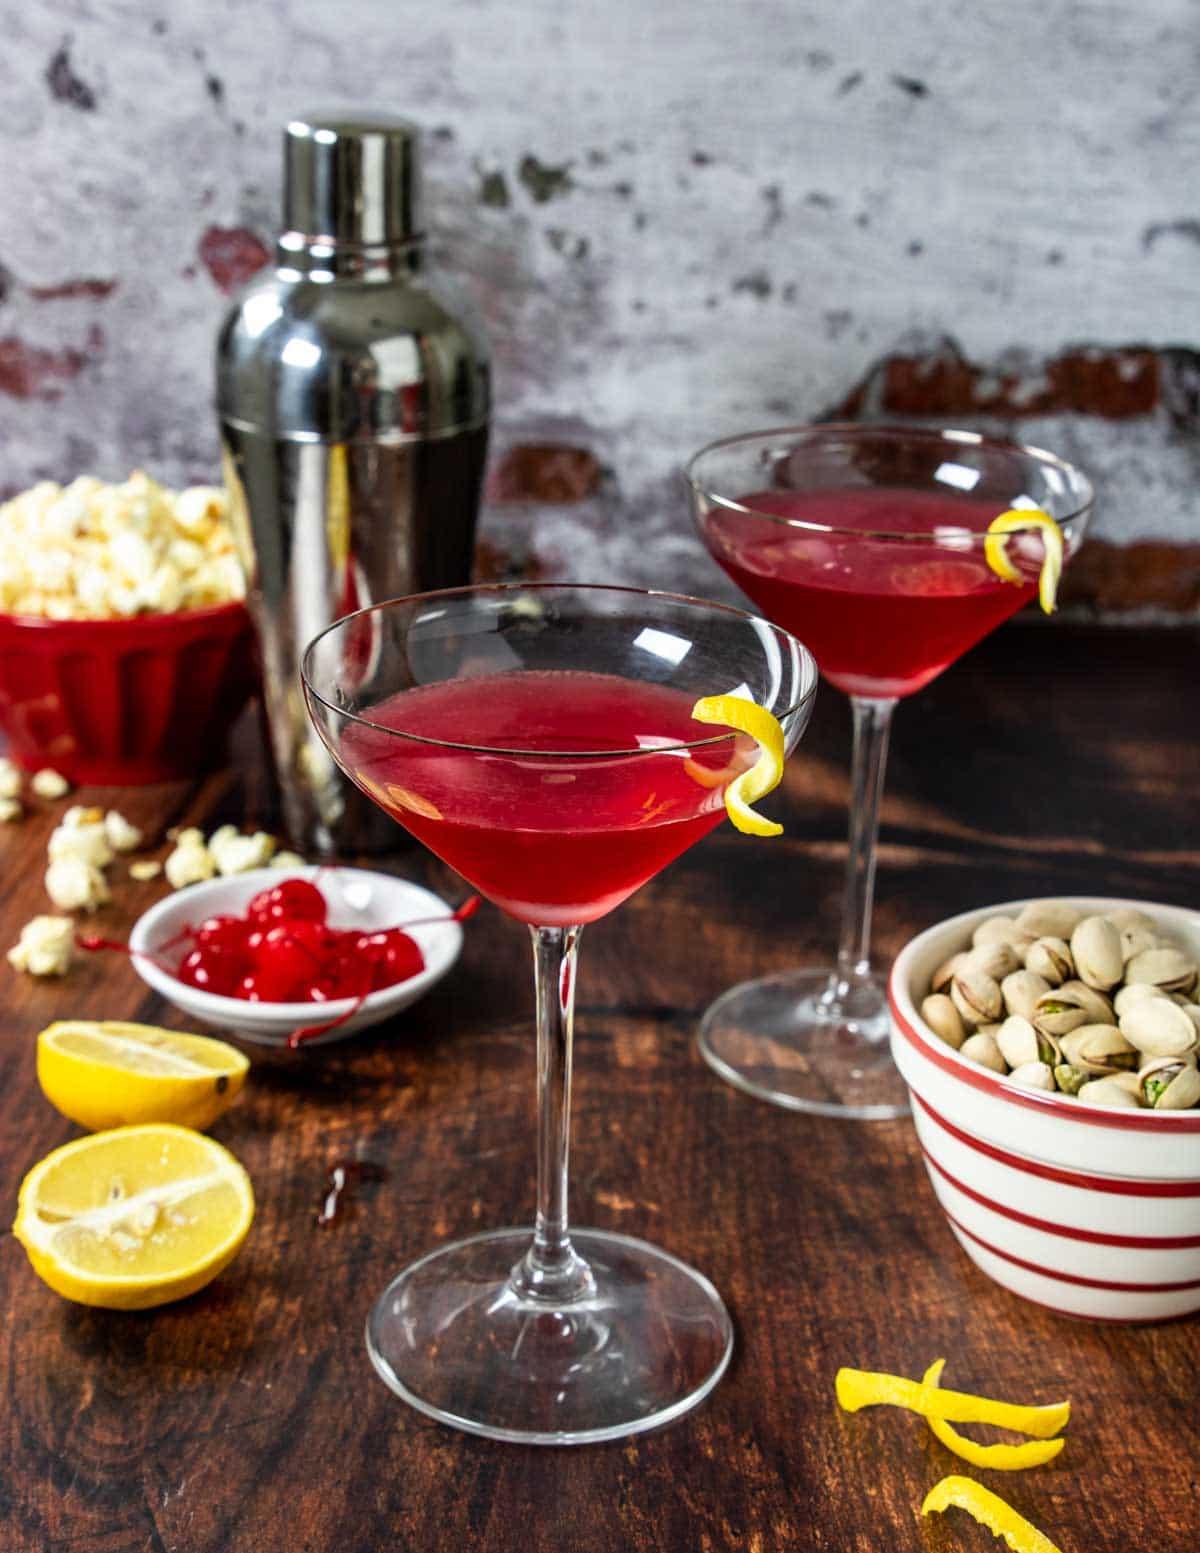 a red martini cocktail on a table with snacks